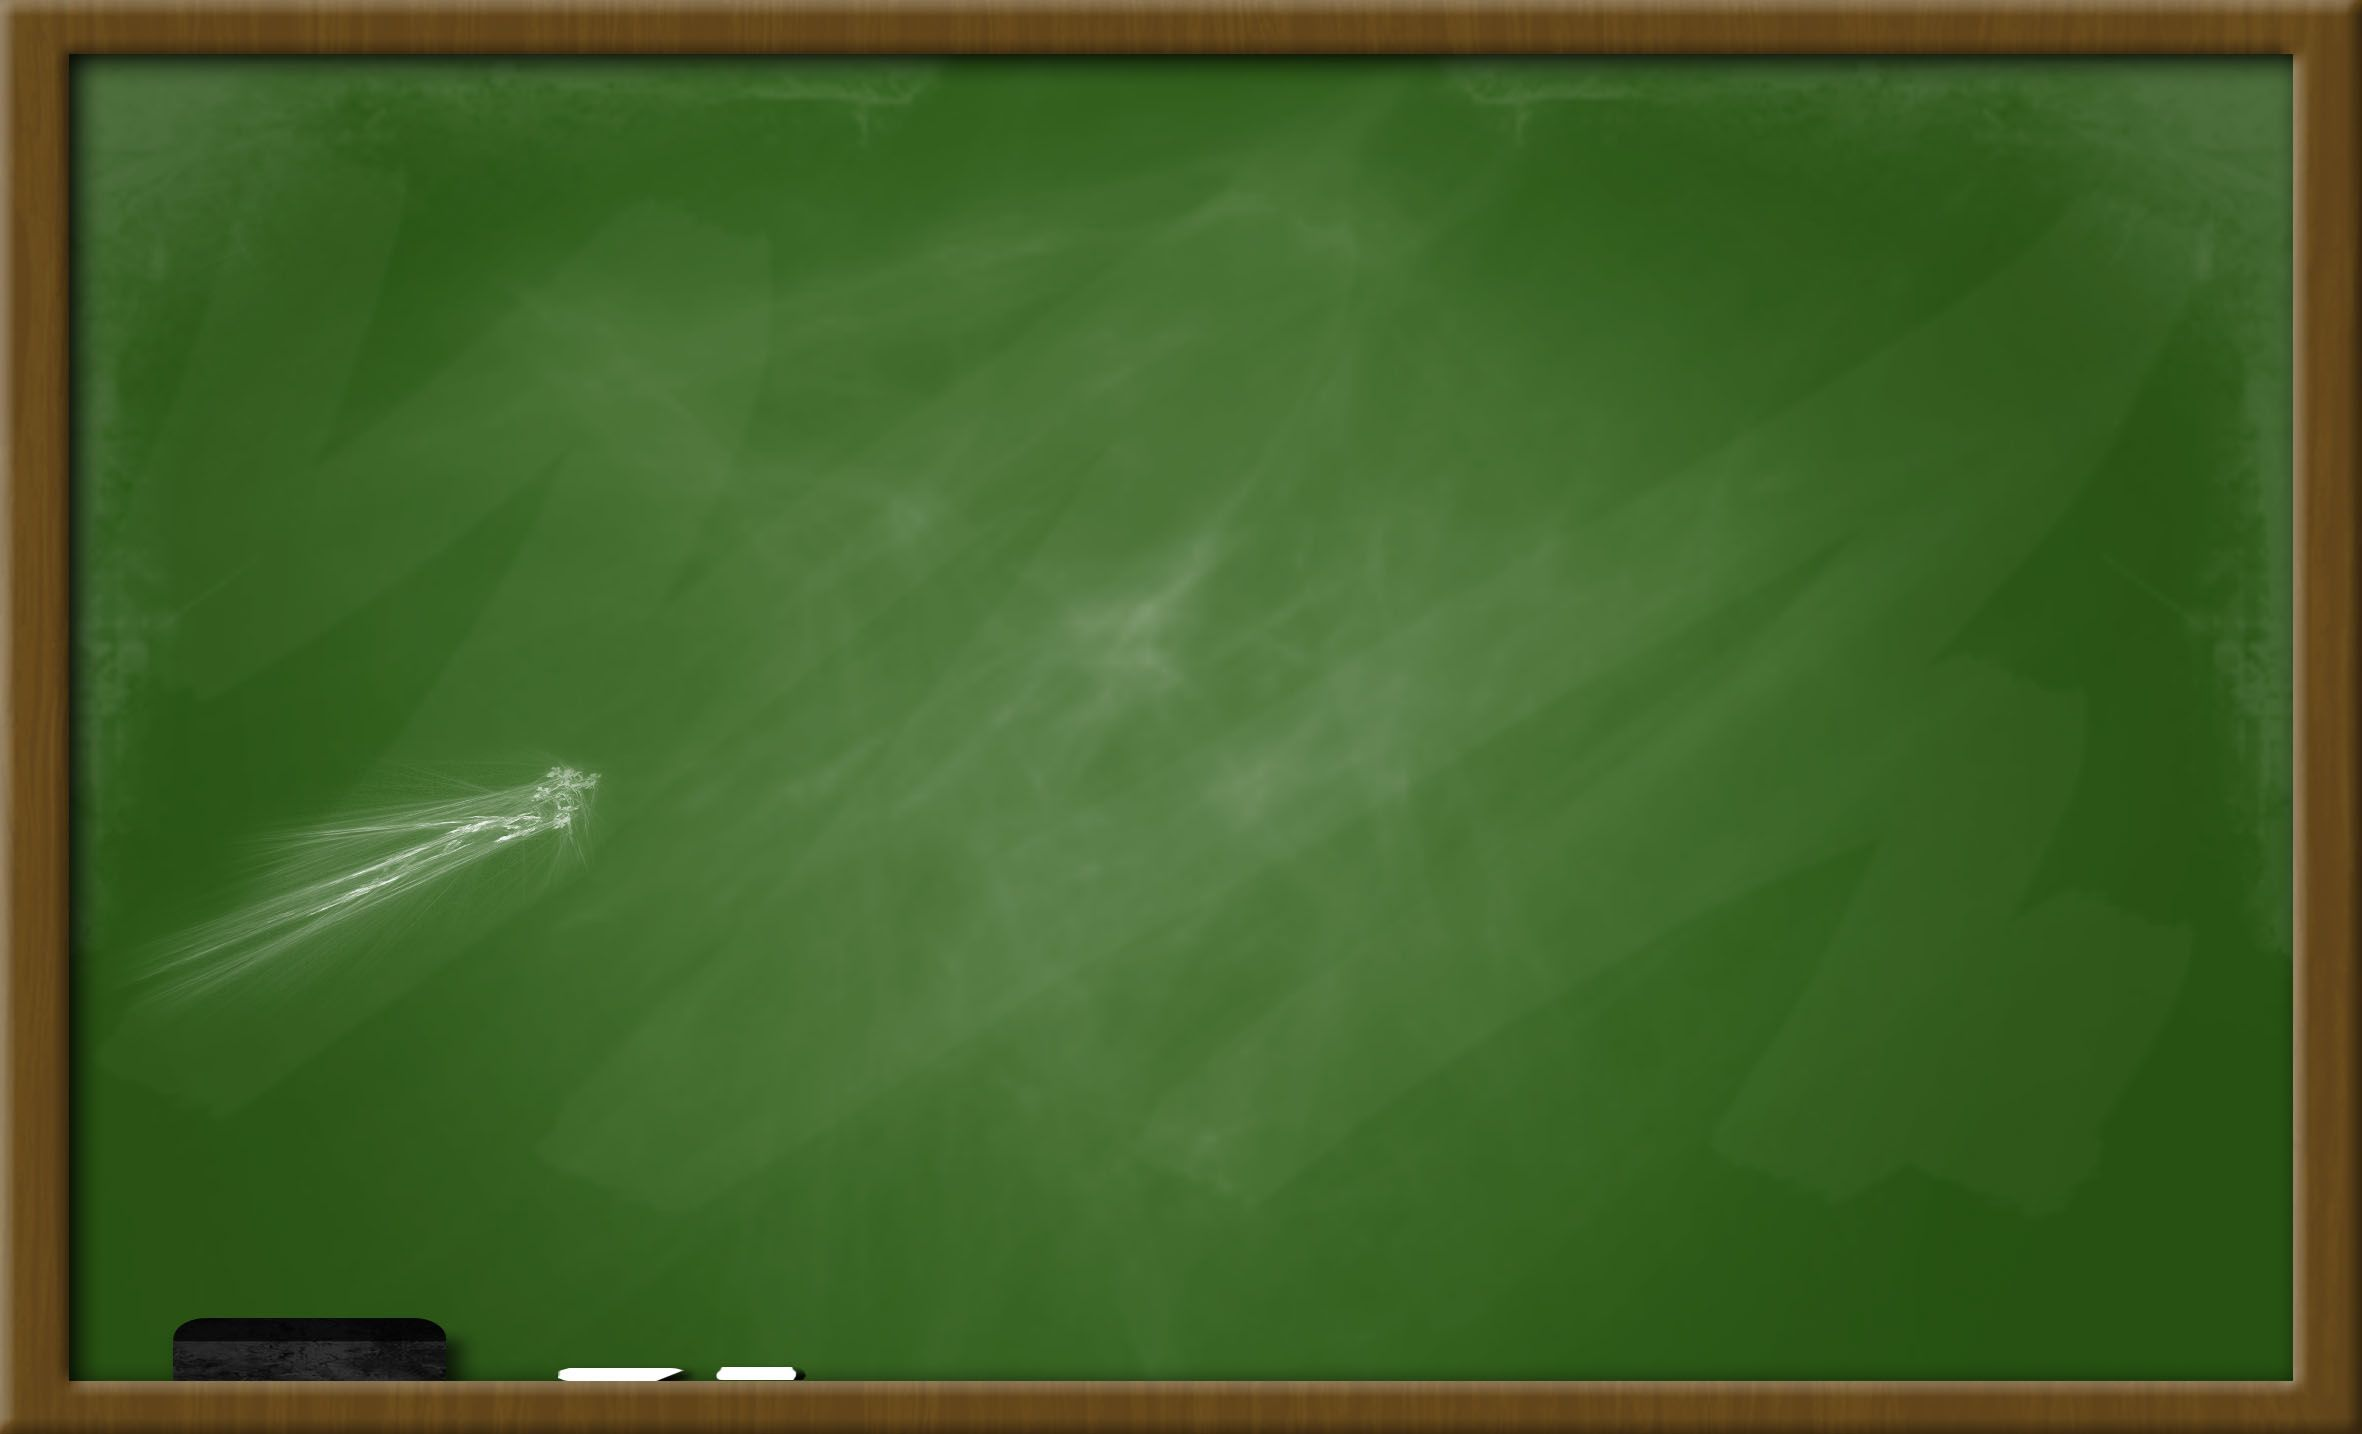 bb774067a2b0 Free Download Chalkboard Pictures.